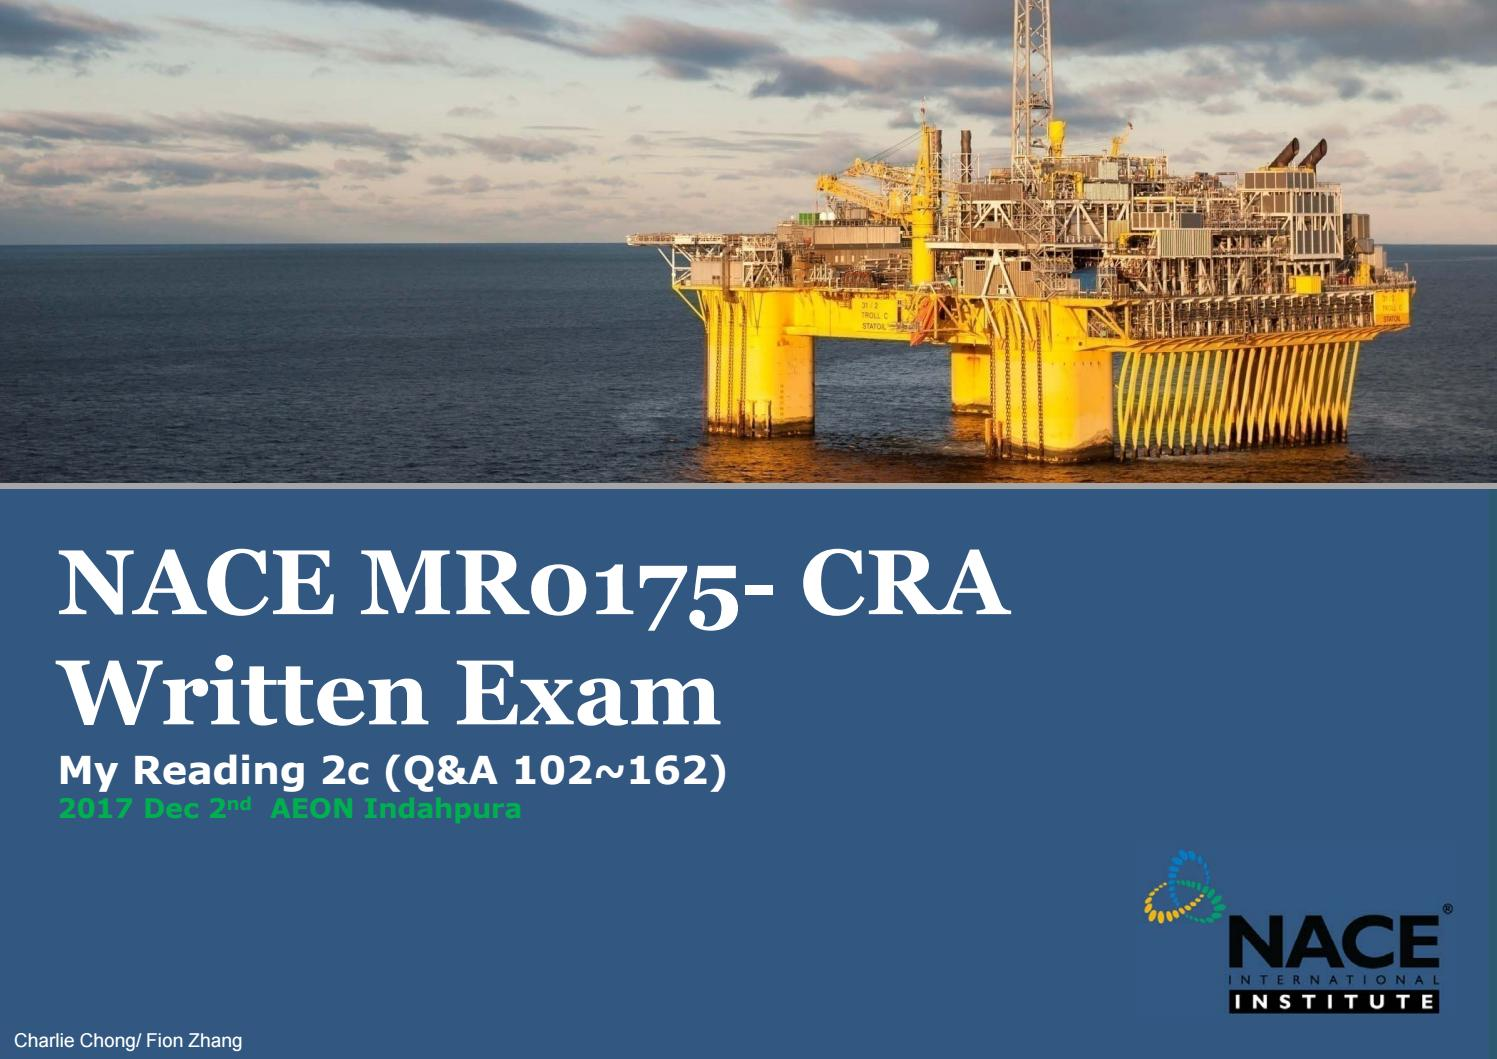 Nace mr0175 CRA Exam Note by charlie Chong - issuu